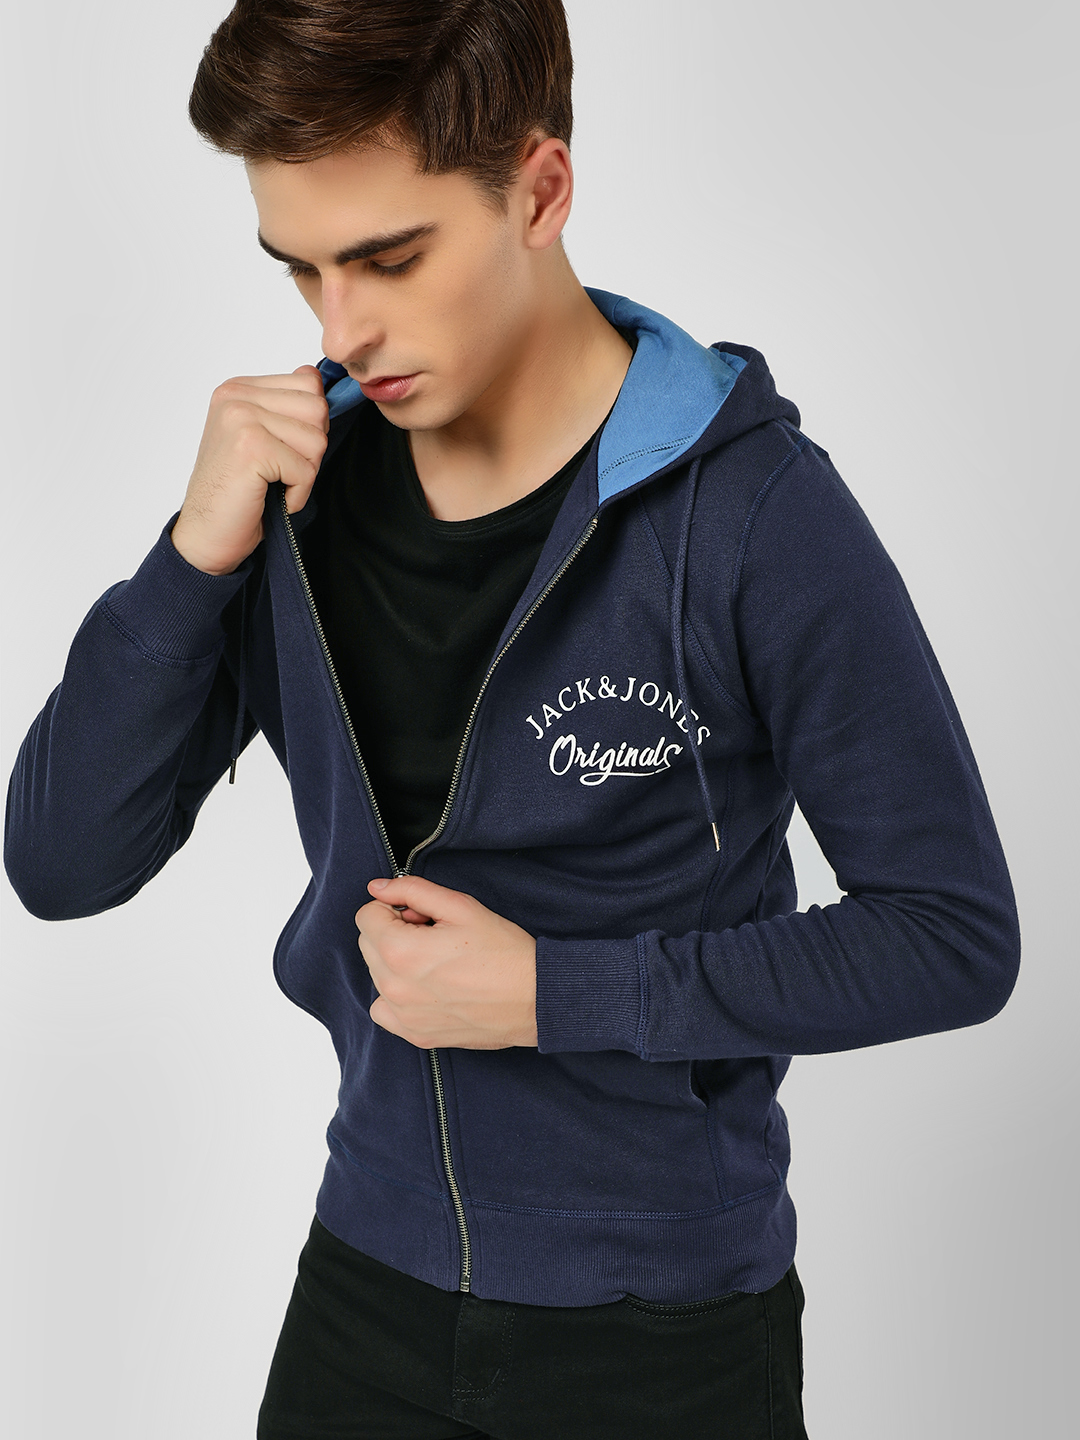 Jack & Jones Blue Zipper Hooded Sweatshirt 1